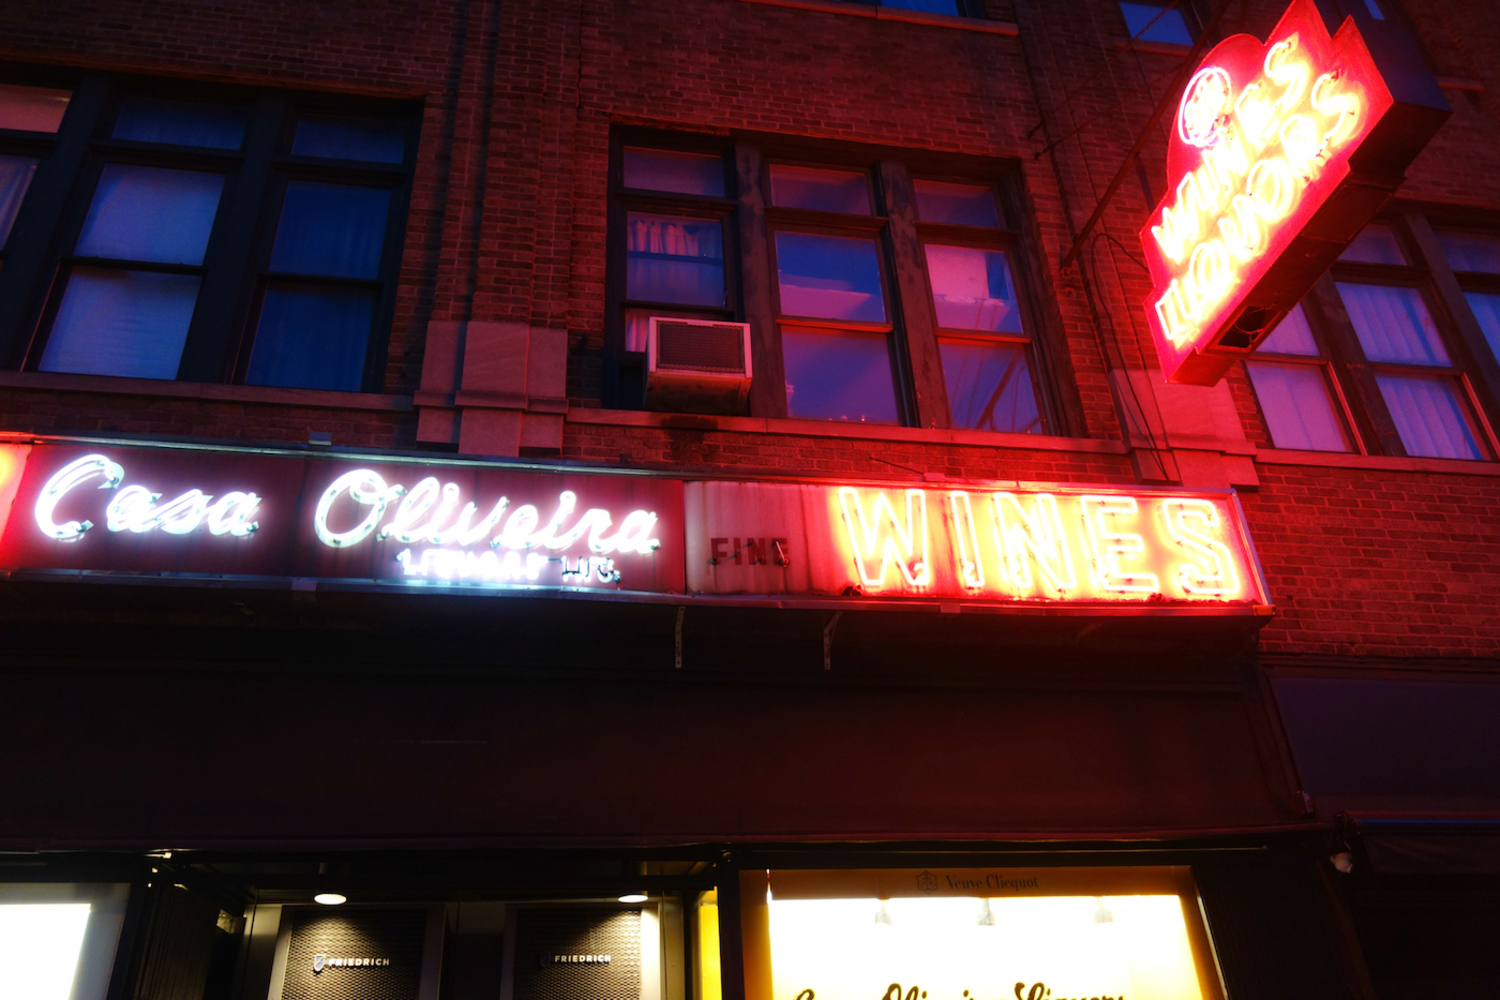 Historic neon on Casa Oliveira Wines & Liquors on Seventh Avenue